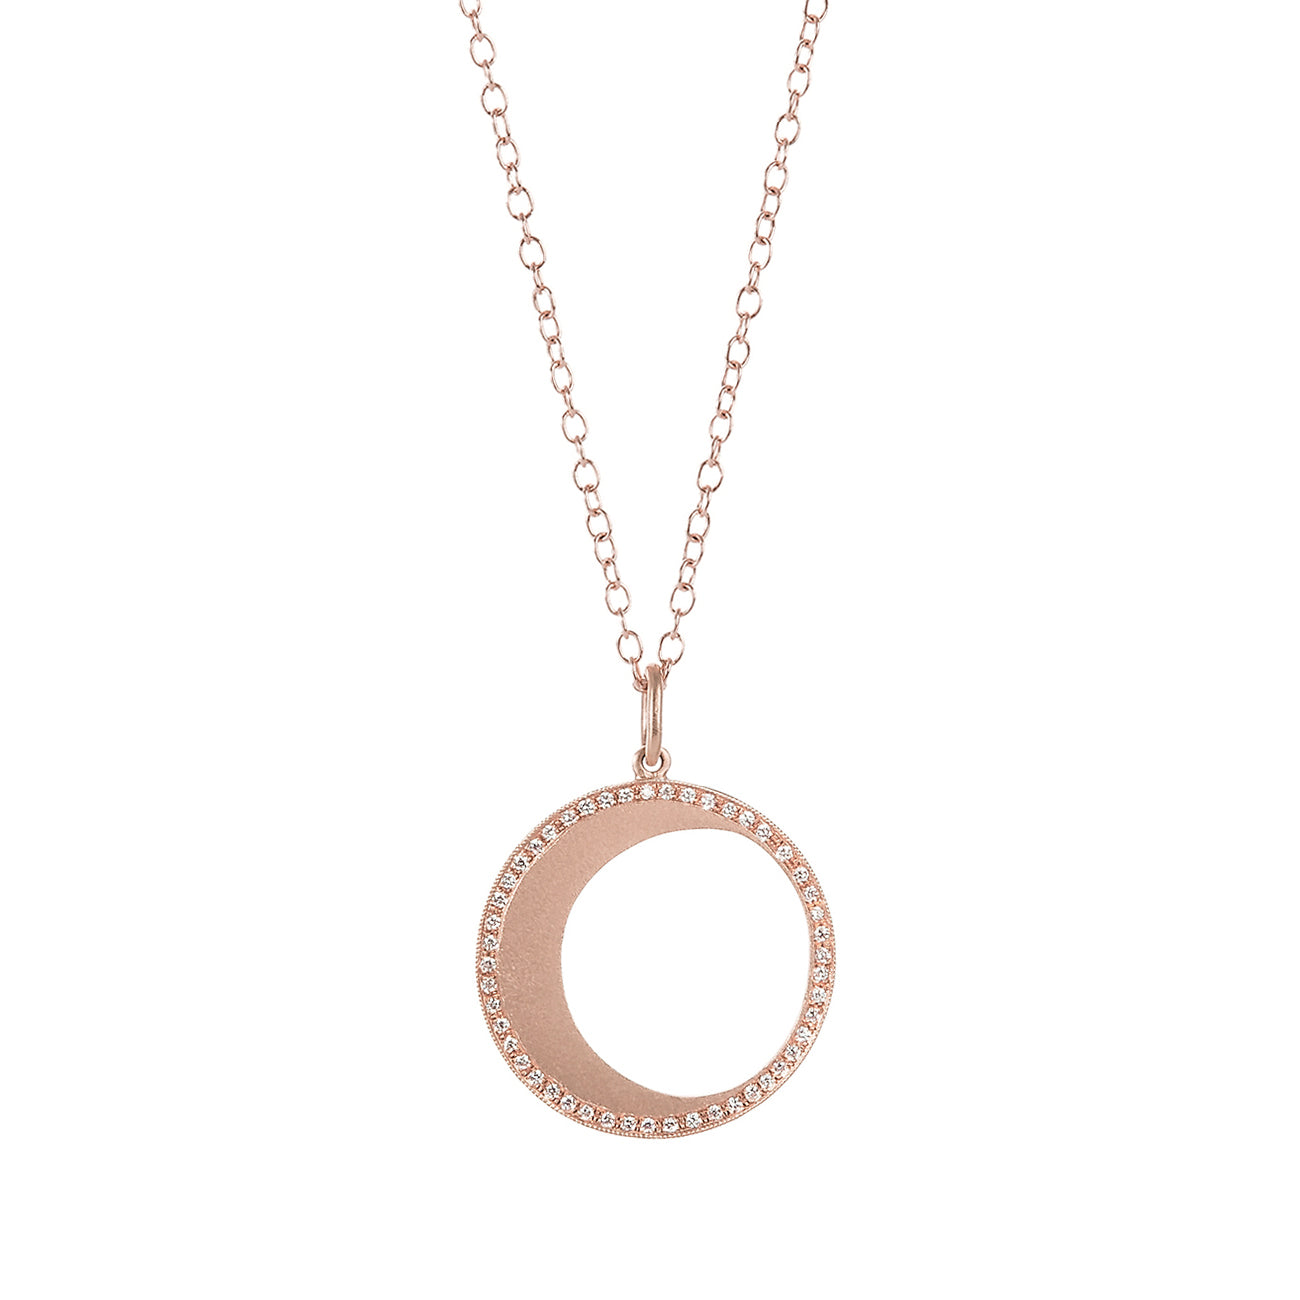 Large Sliver Moon Phase Necklace - Andrea Fohrman - Necklaces | Broken English Jewelry